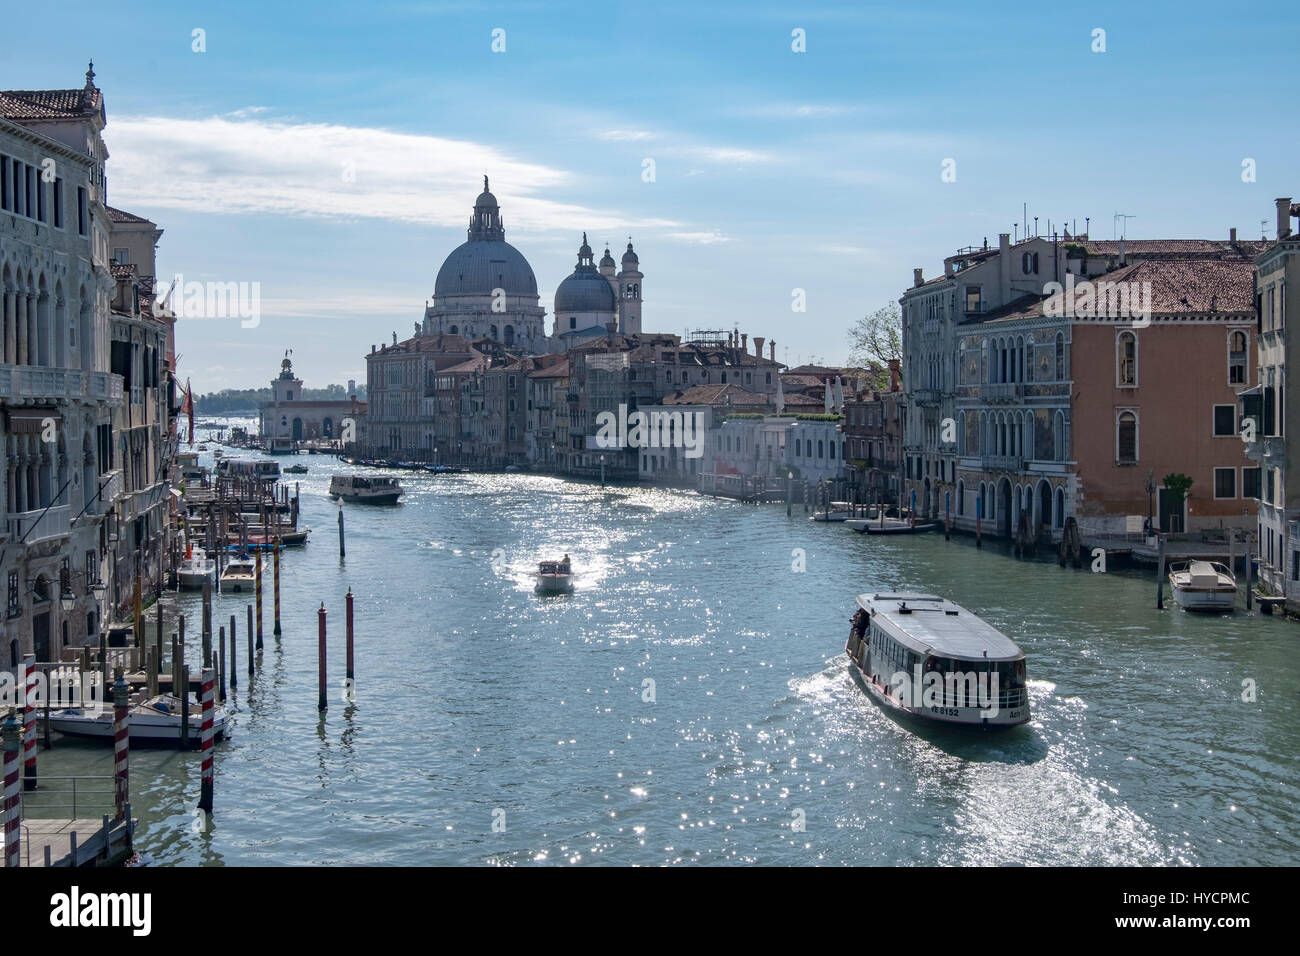 Morning view of the Grand Canal of Venice from the Academia Bridge - Stock Image